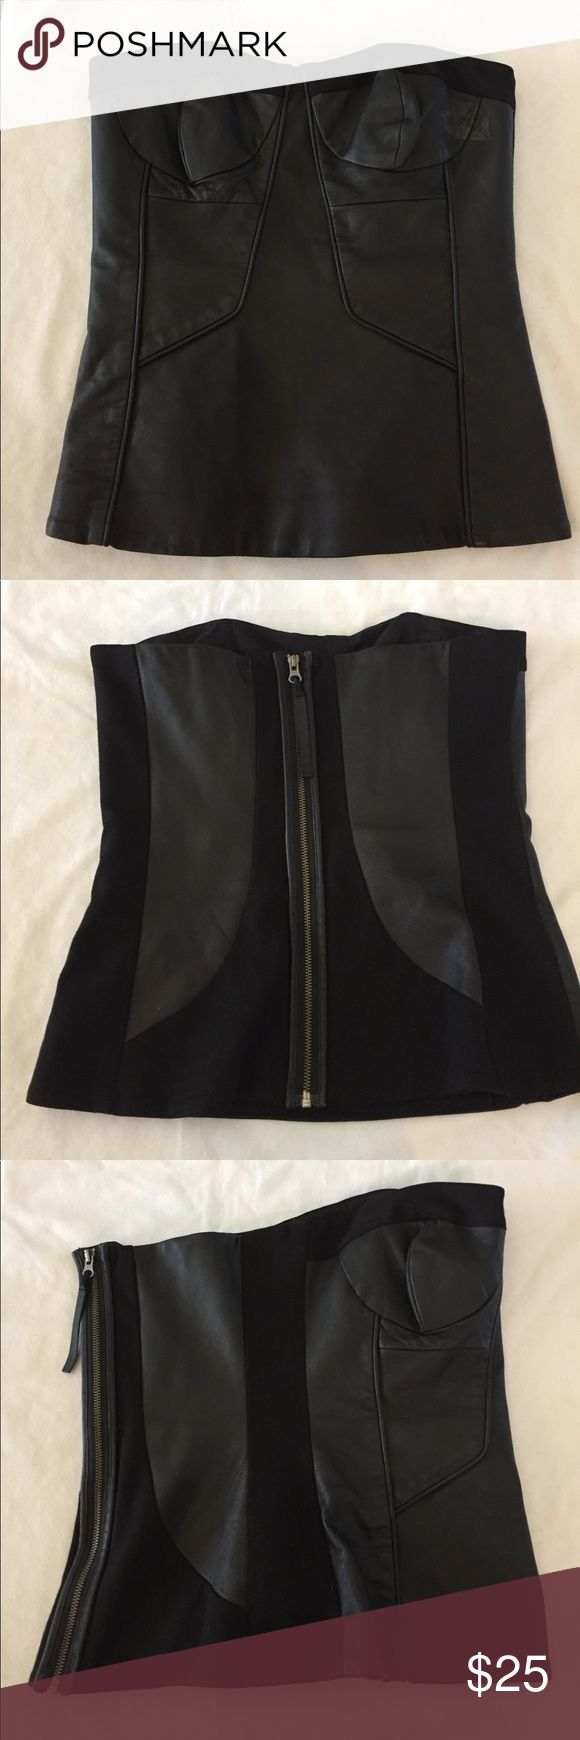 "L.A.M.B. corset bustier size 10 flaw LAMB leather corset Gwen Staffani collection size 10 measures flat-bust 16"", waist 15.5"", bottom hemline 19"" has fantastic support with stretch fabric on sides and in back. This piece has a flaw on the left bust under the arm. The leather was damaged by tape and needs recoloring in that area. The leather itself is not ripped or torn. Please note price is reduced to reflect flaw shown in photo. L.A.M.B. Tops"